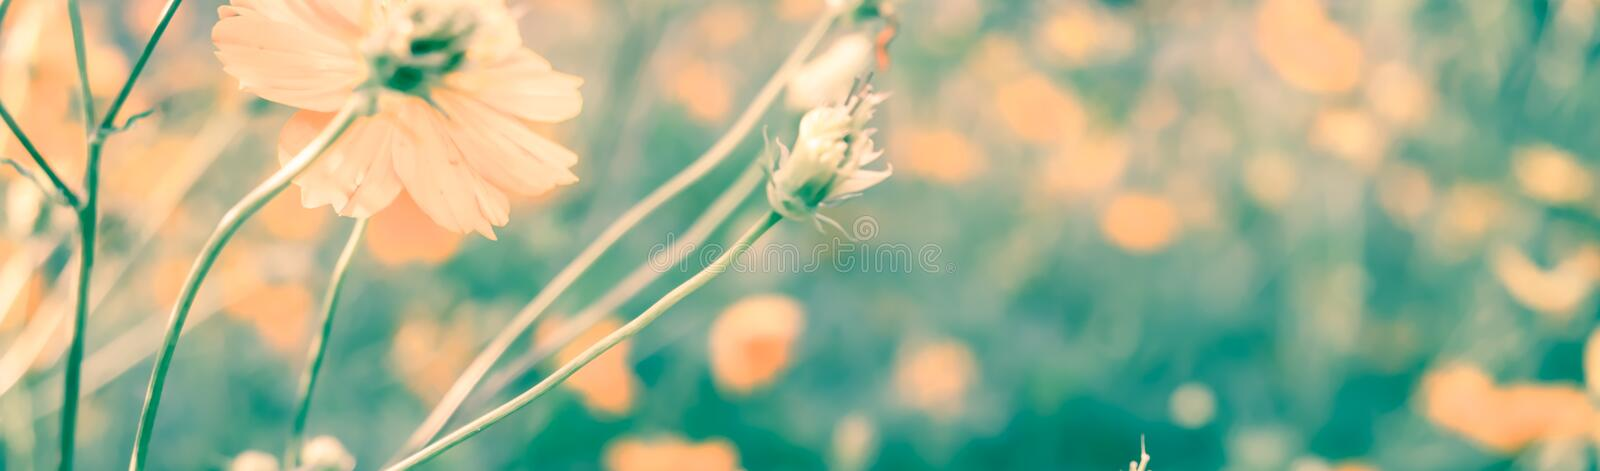 Vintage retro of flower in soft color and blurry style royalty free stock images